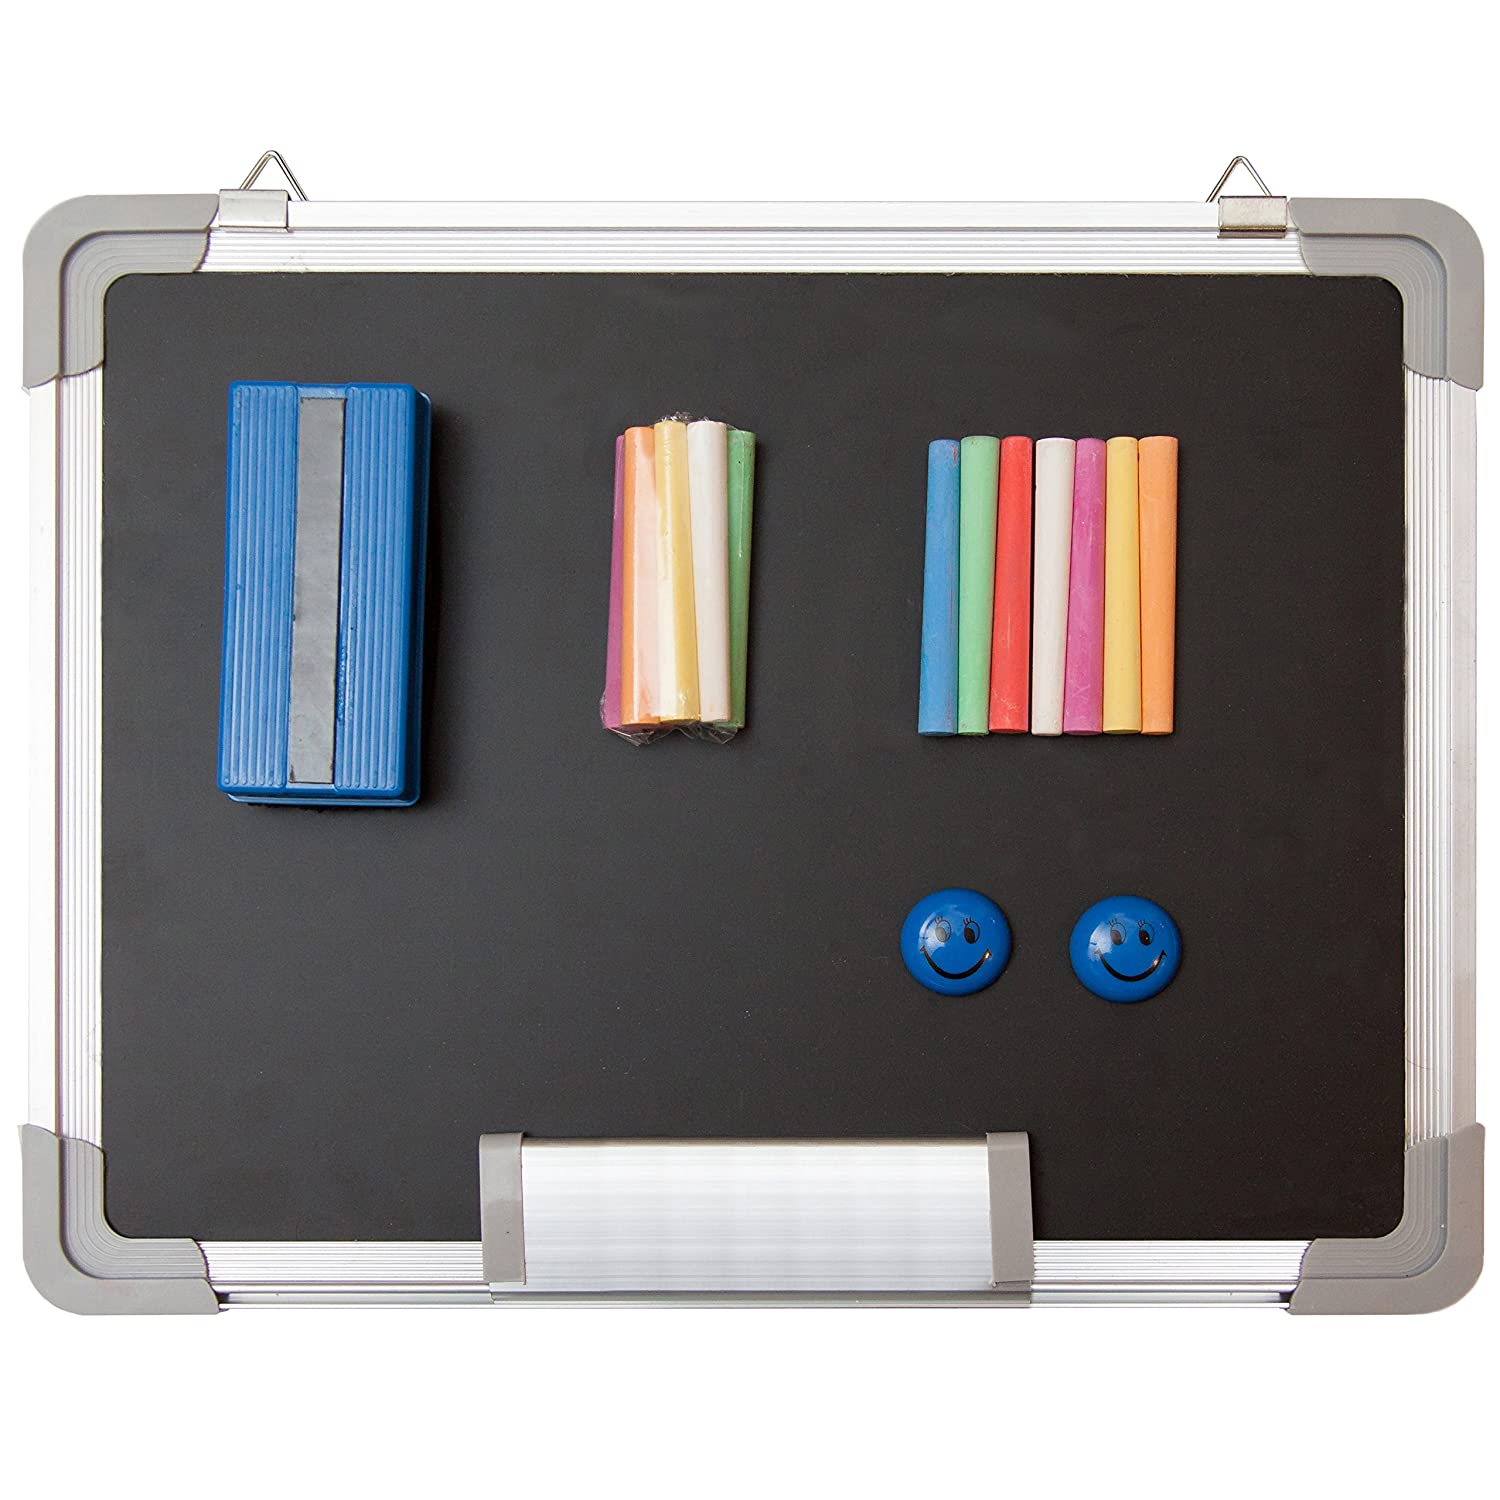 "Chalkboard Set - Small Black Board 15 x 12"" + 1 Magnetic Chalk Eraser, 14 Chalk Sticks (7 Colors) and 2 Magnets - Mini Hanging Wall Message Sign Blackboard for Home Office Kids (15x12"" Landscape)"